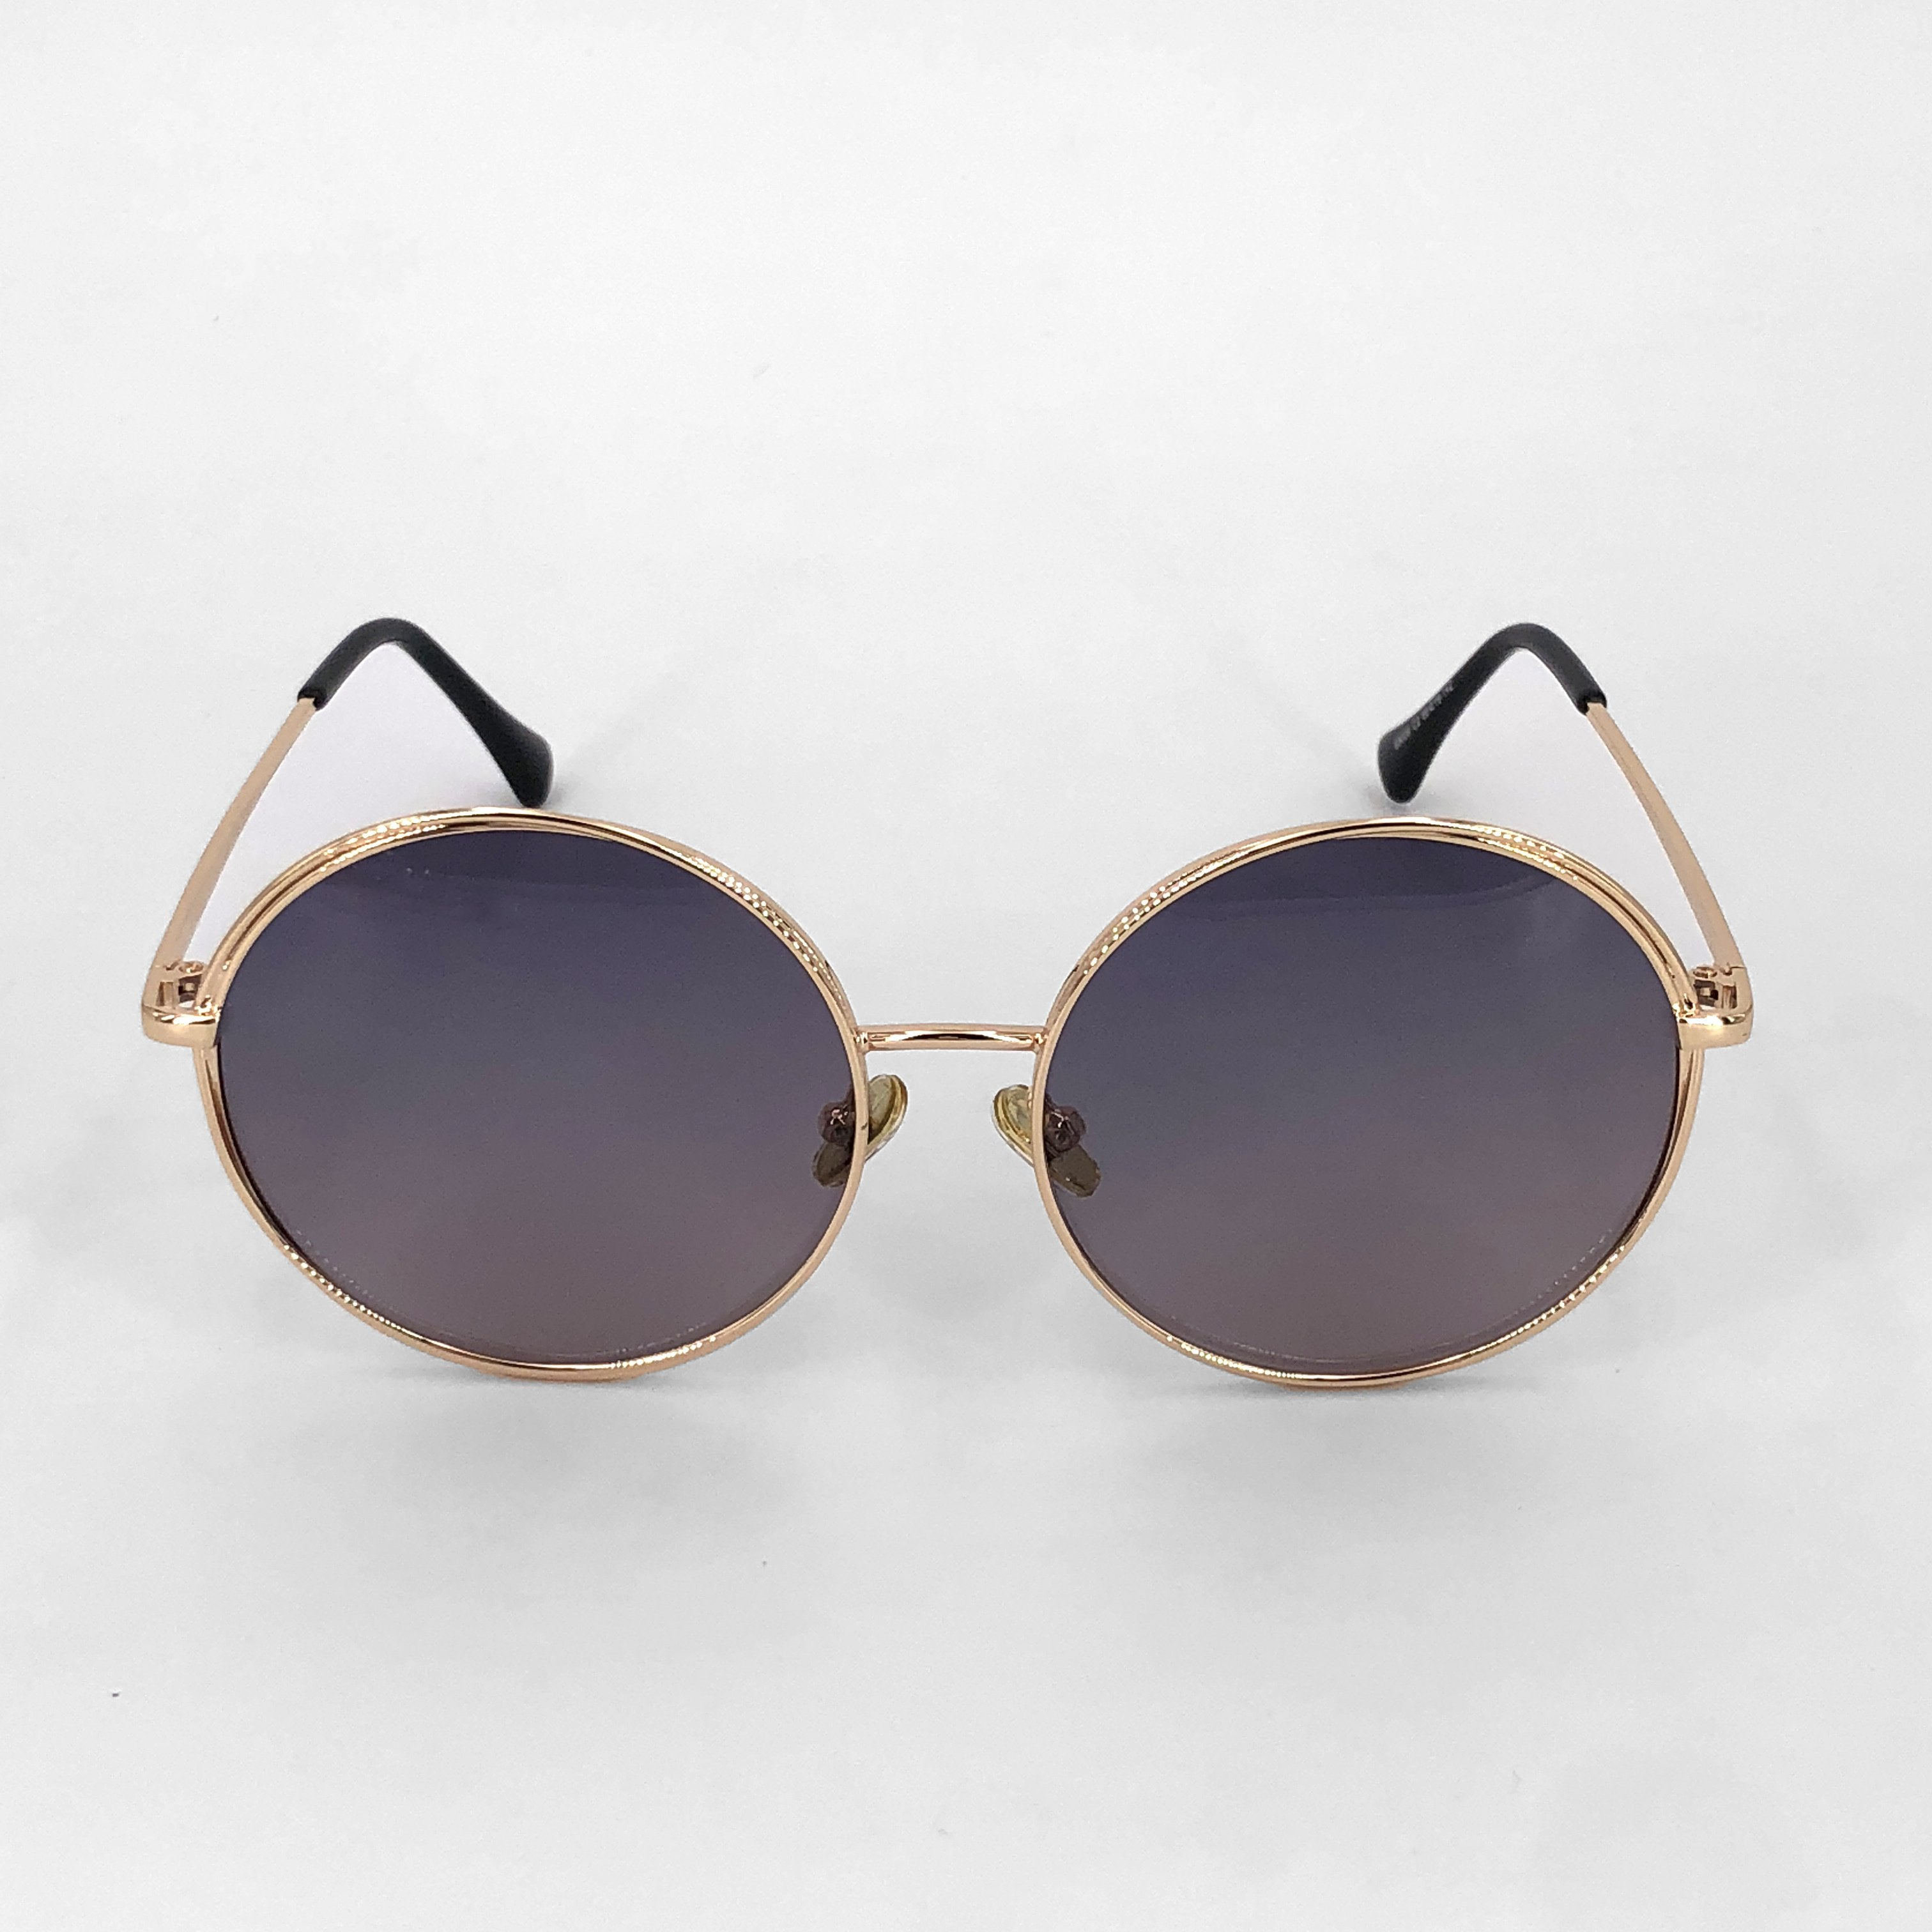 Becky oversized round polarized sunglasses *Less than perfect